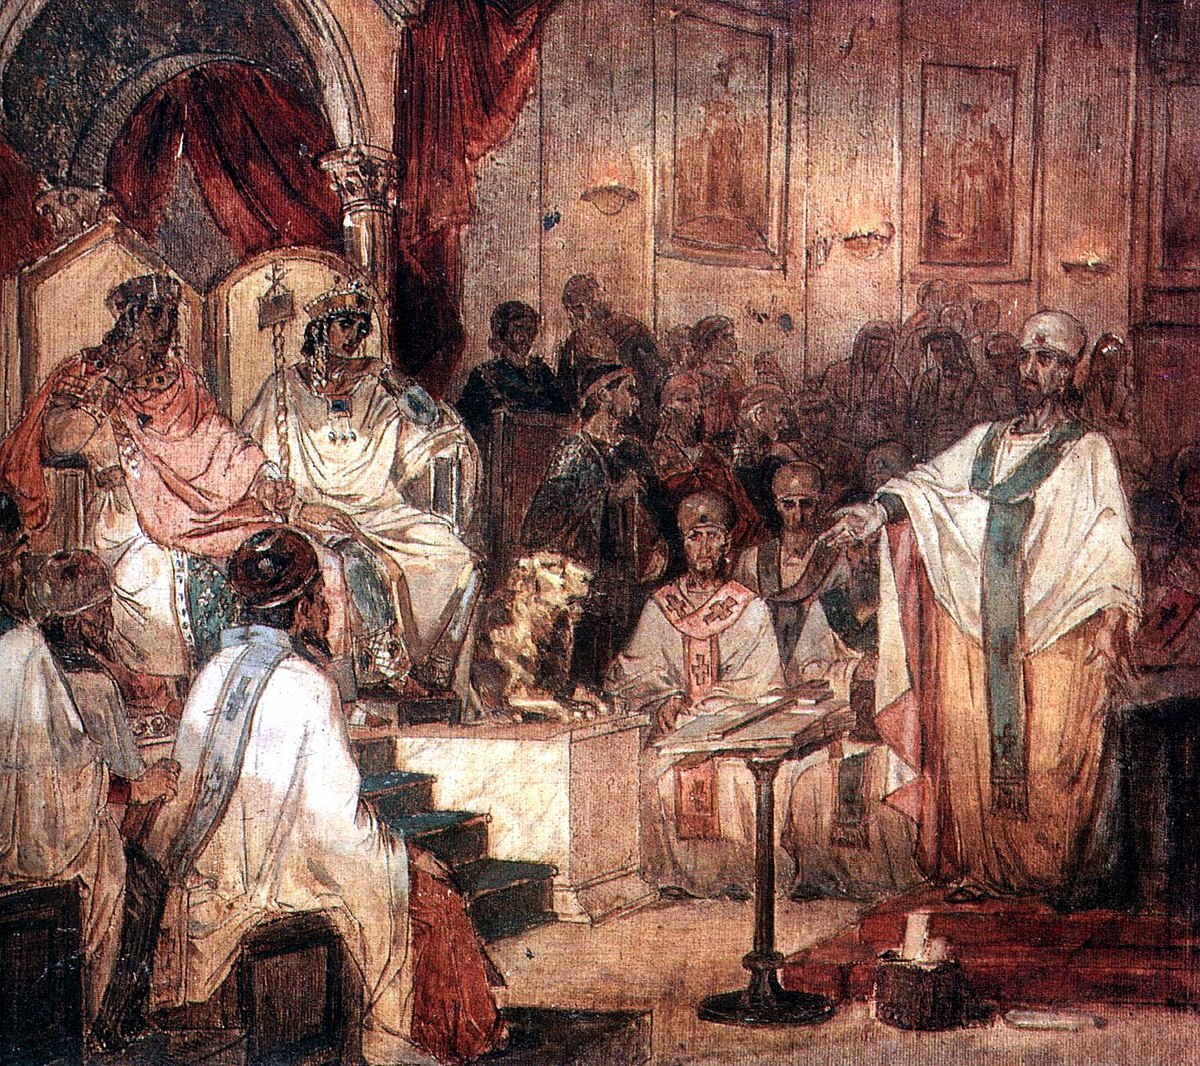 https://upload.wikimedia.org/wikipedia/commons/thumb/3/3c/Fourth_ecumenical_council_of_chalcedon_-_1876.jpg/1200px-Fourth_ecumenical_council_of_chalcedon_-_1876.jpg